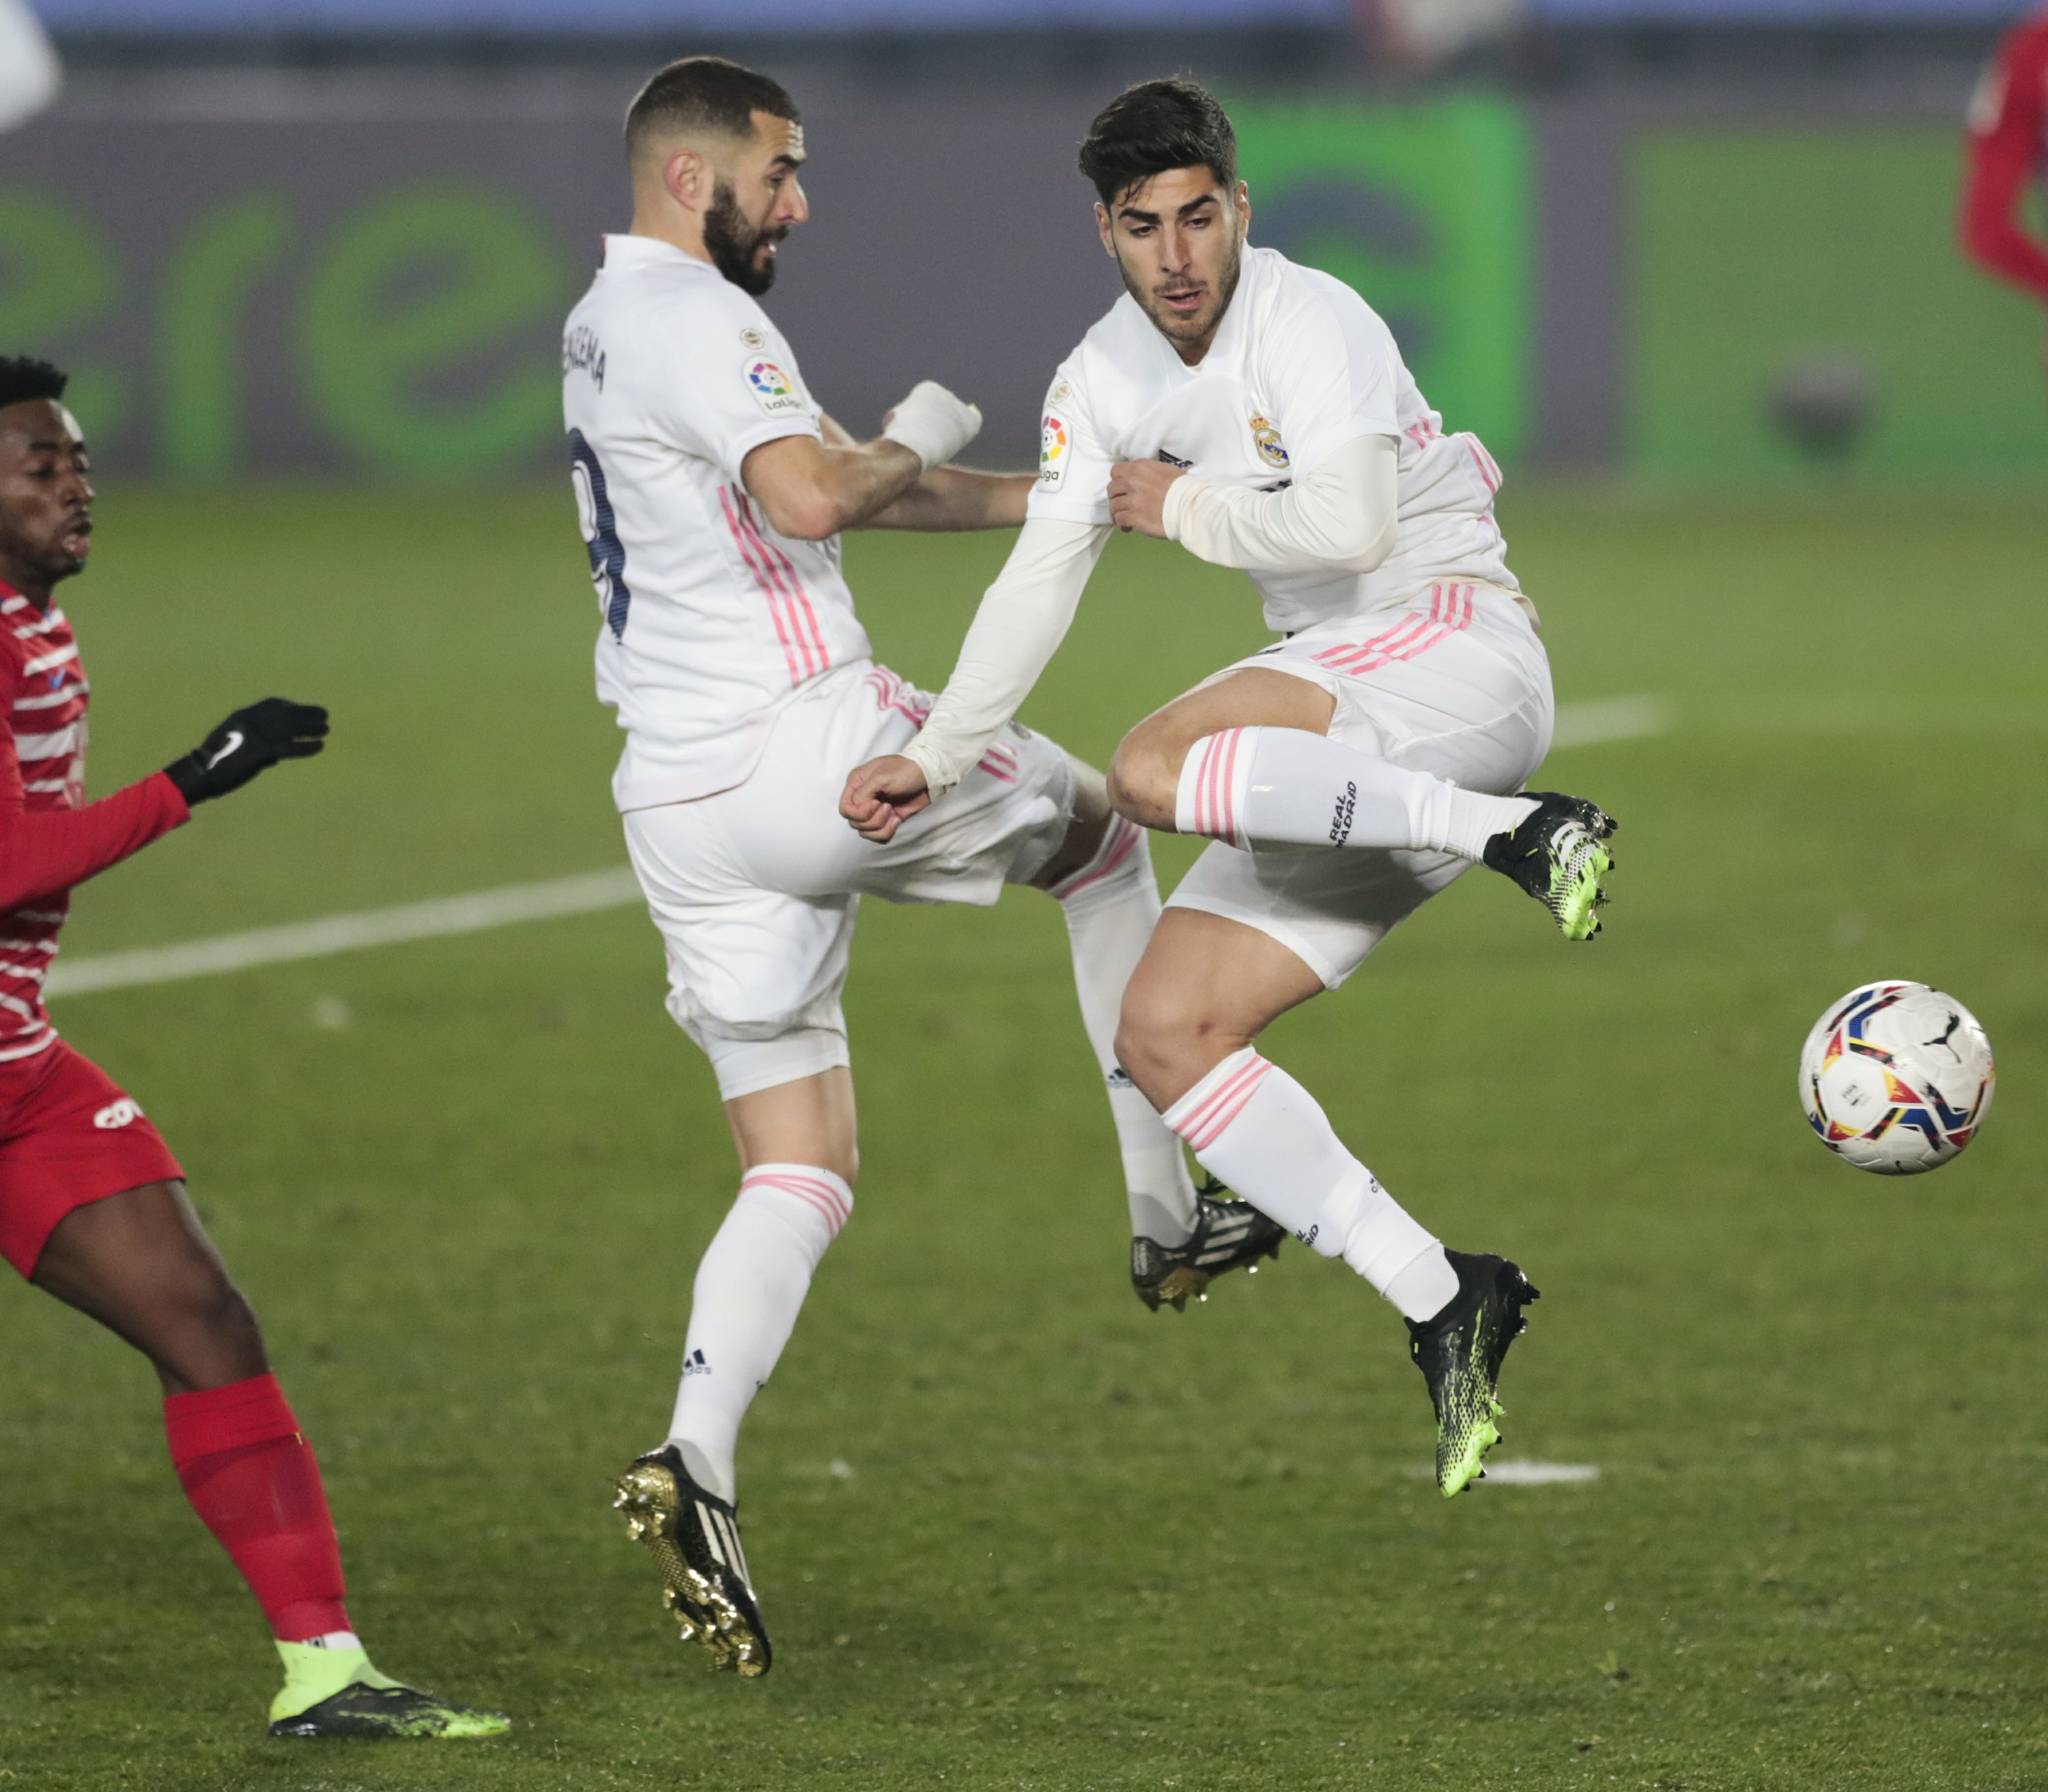 Asensio spurs Real Madrid to 2-0 win over Granada